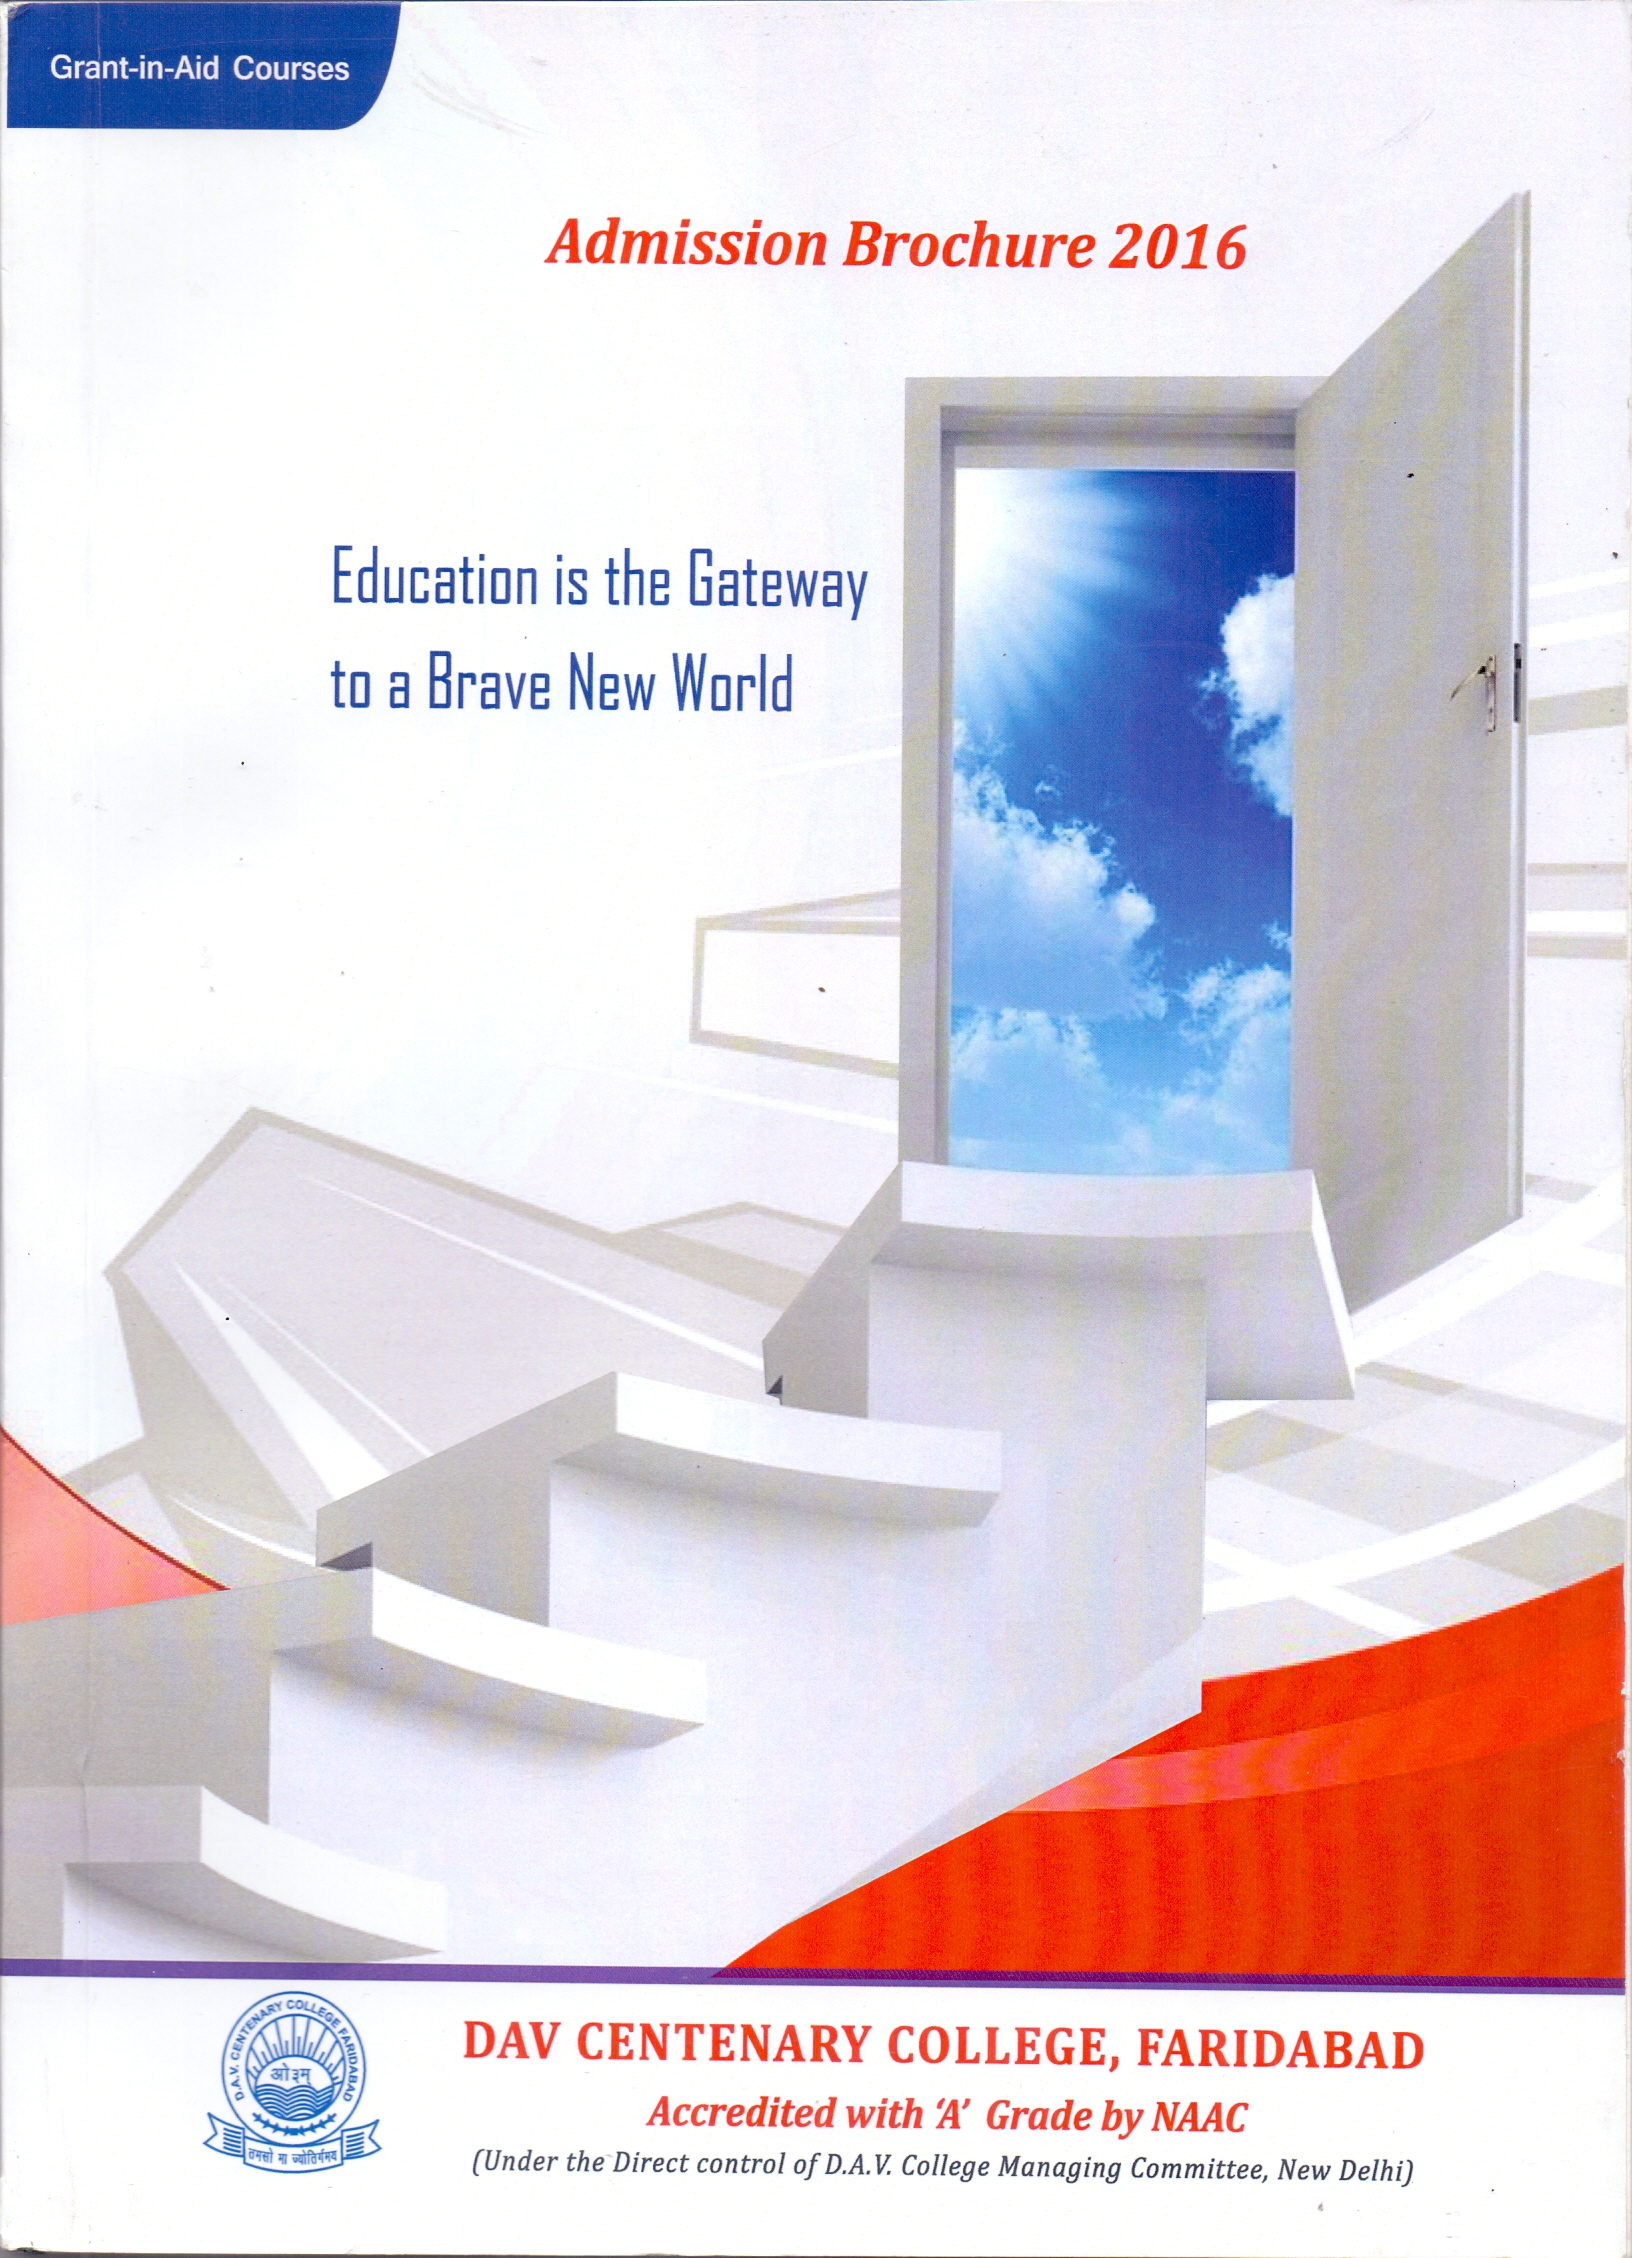 About Admission Brochure